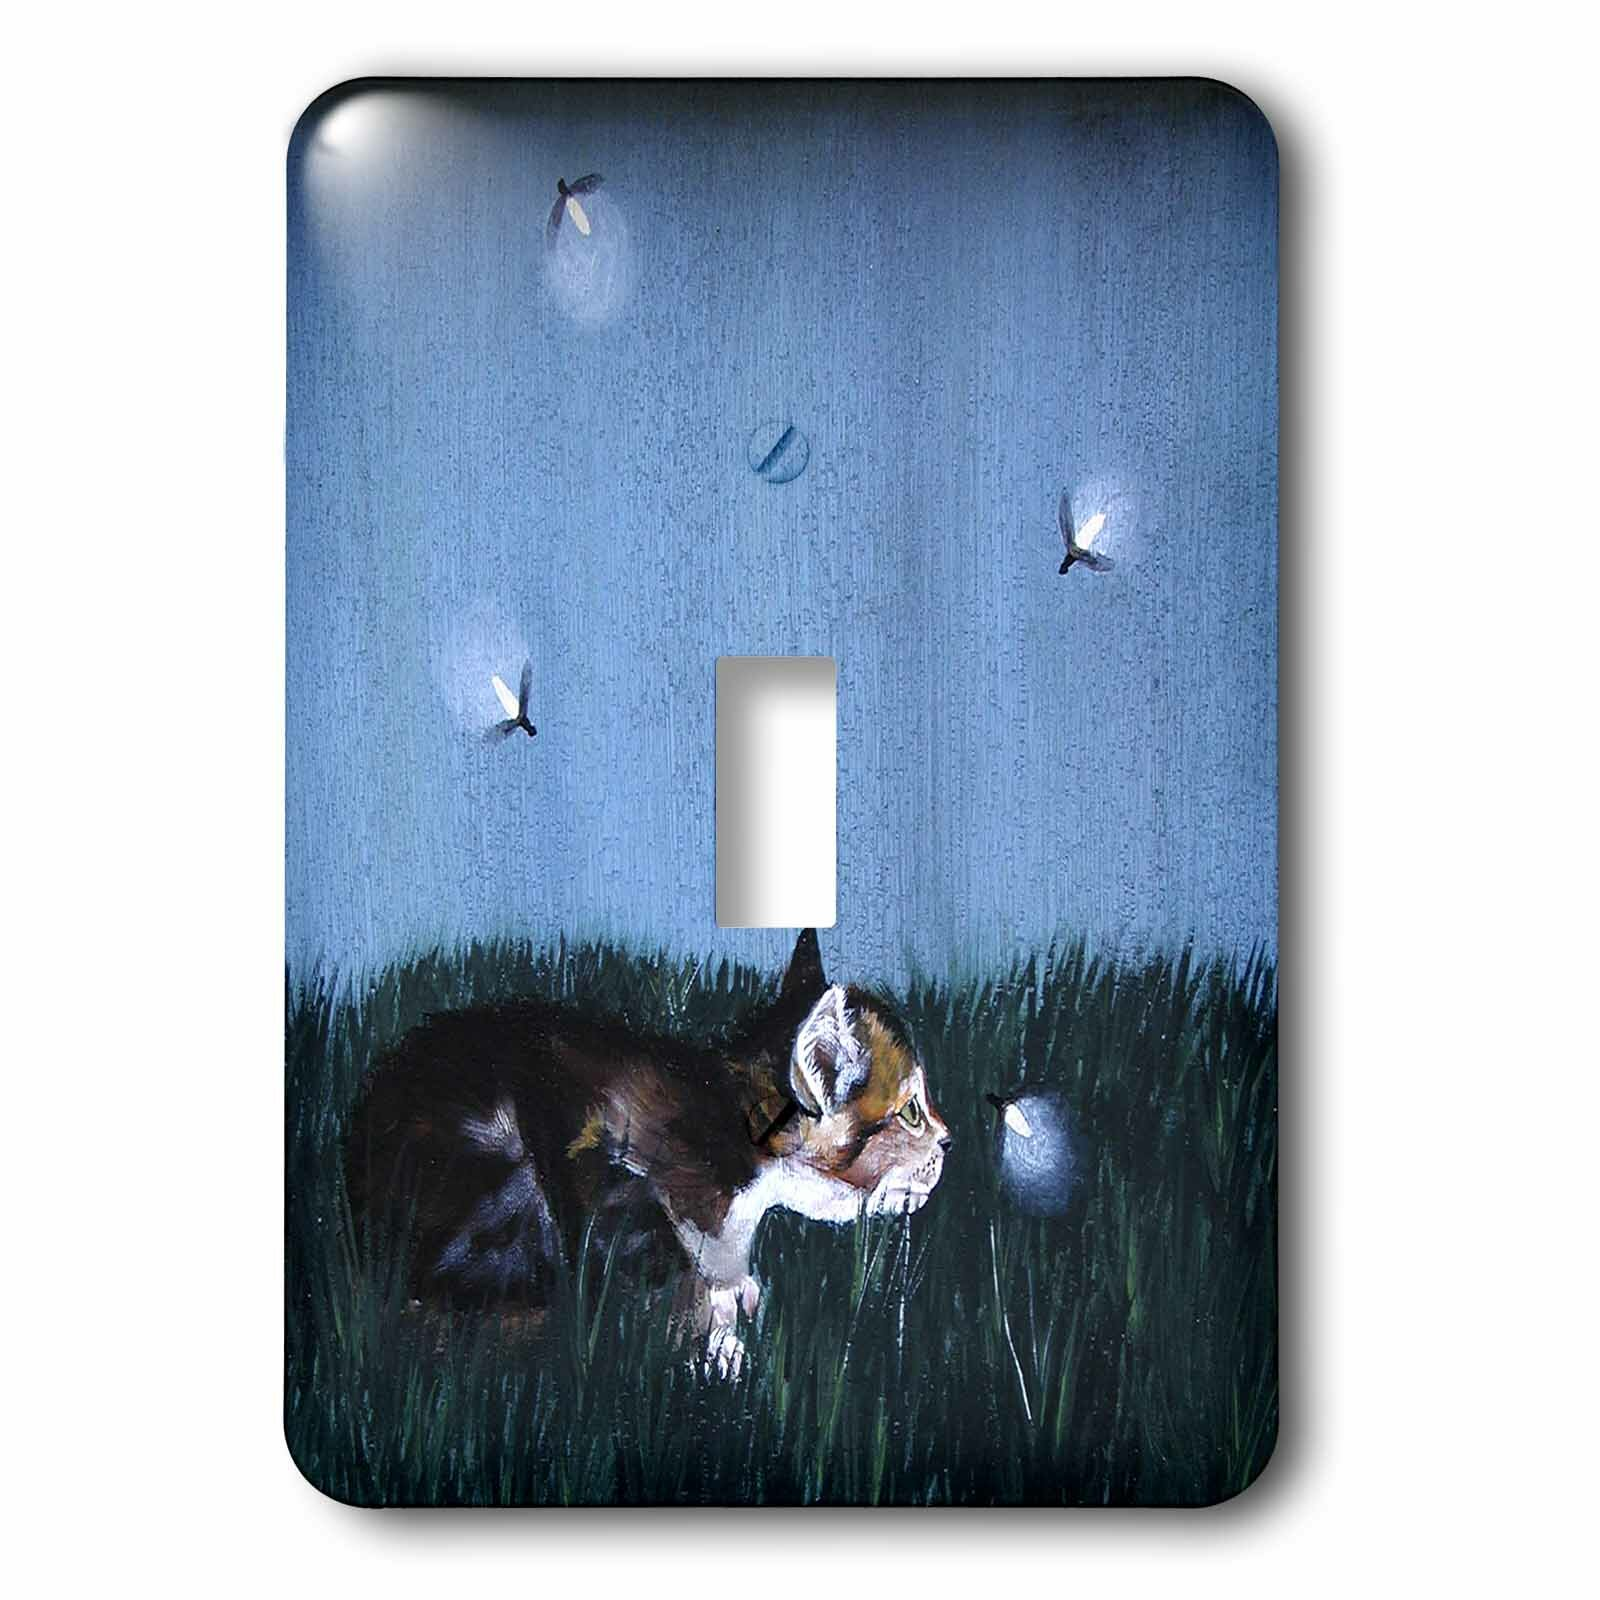 3drose Side View Of Kitten In The Grass 1 Gang Toggle Light Switch Wall Plate